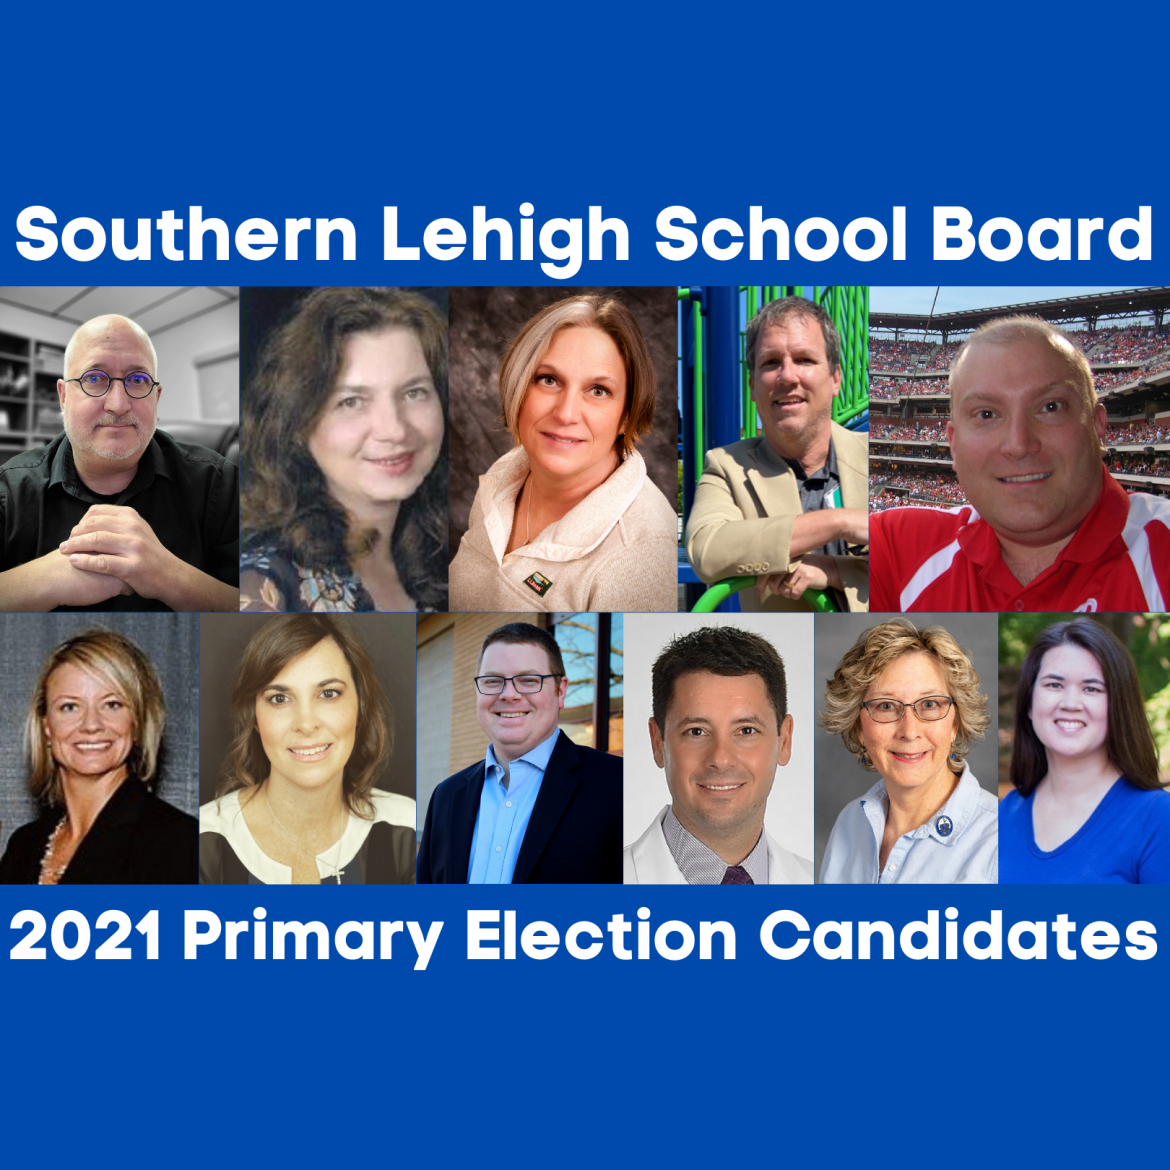 Southern Lehigh School Board Primary Candidates